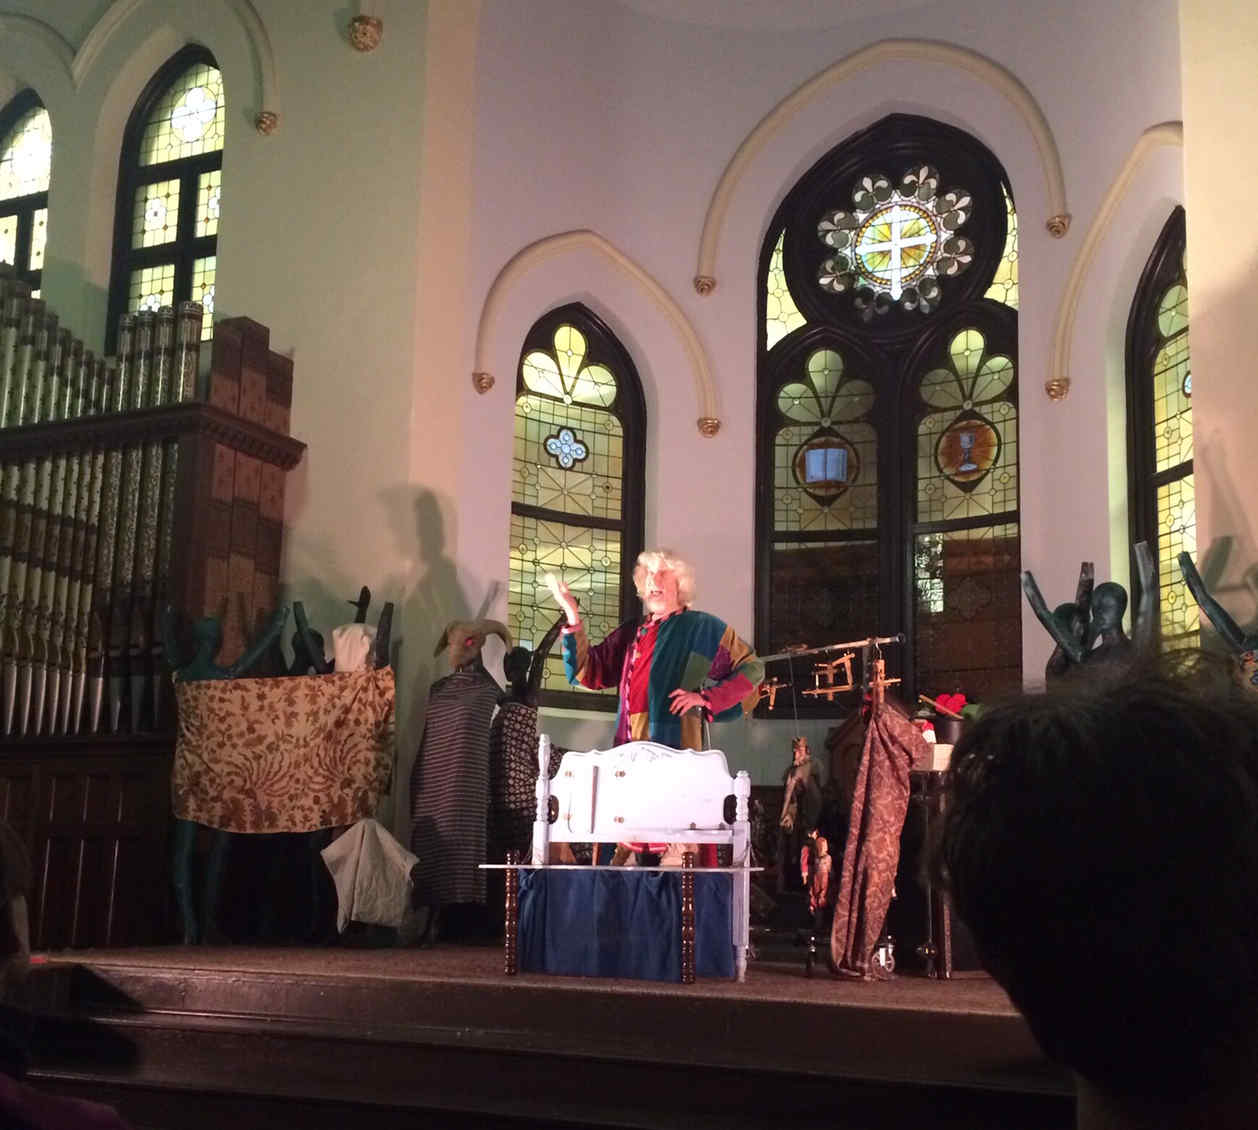 Vit Horejs of the Czechoslovak-American Marionette Theatre in a final performance at the Jan Hus Church, October 2018. Photo courtesy of Bonnie Stein.